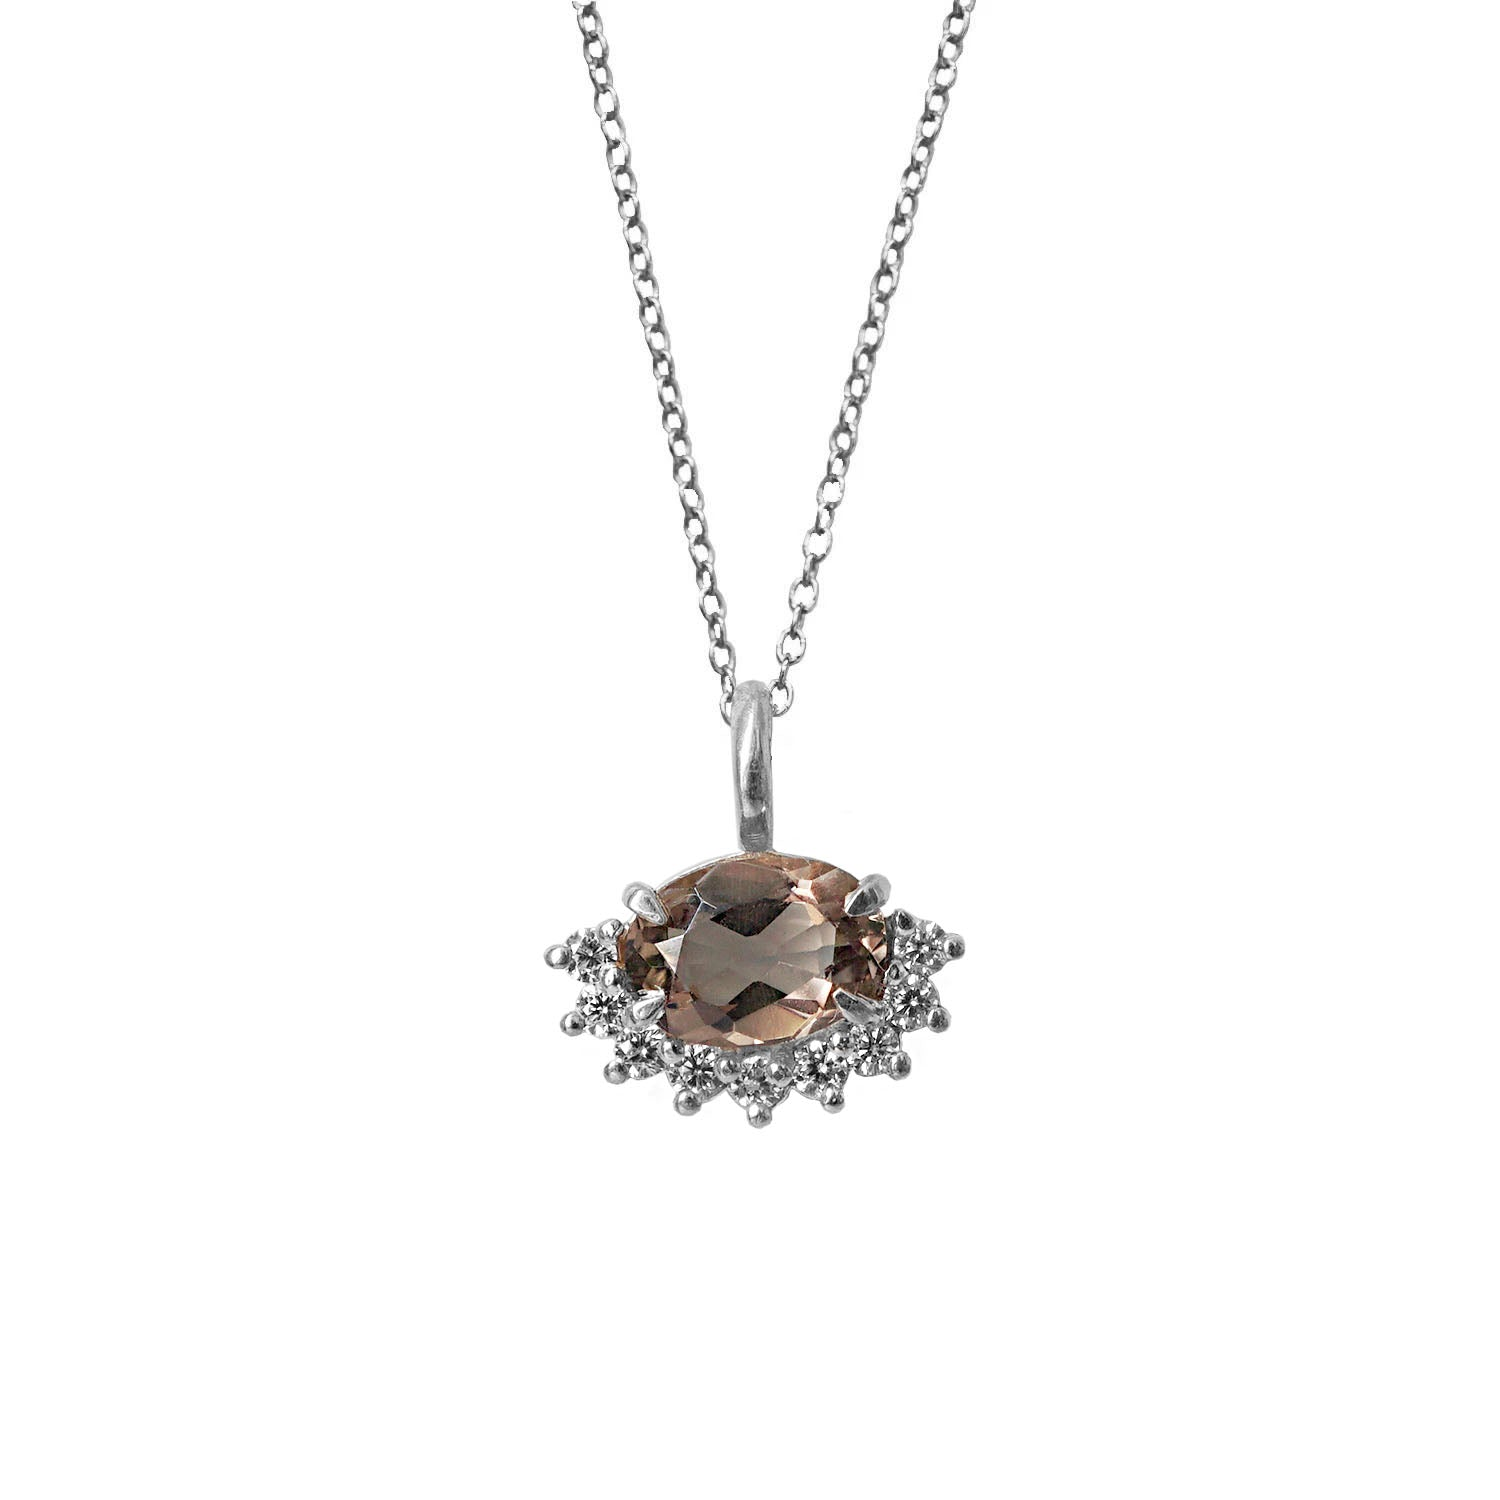 Woodland Smoky Quartz Necklace